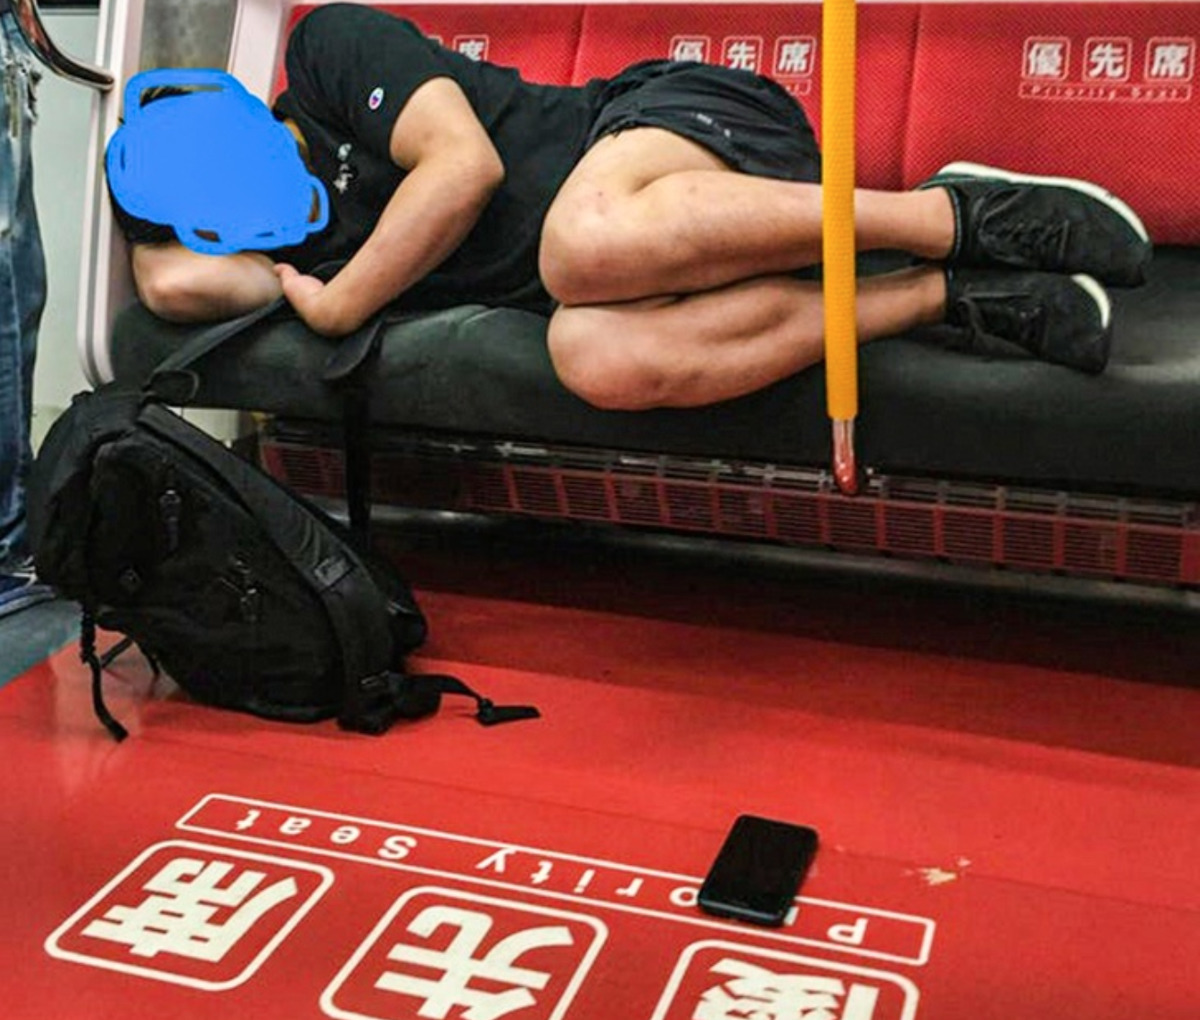 person sleeps on commuter train with phone on floor